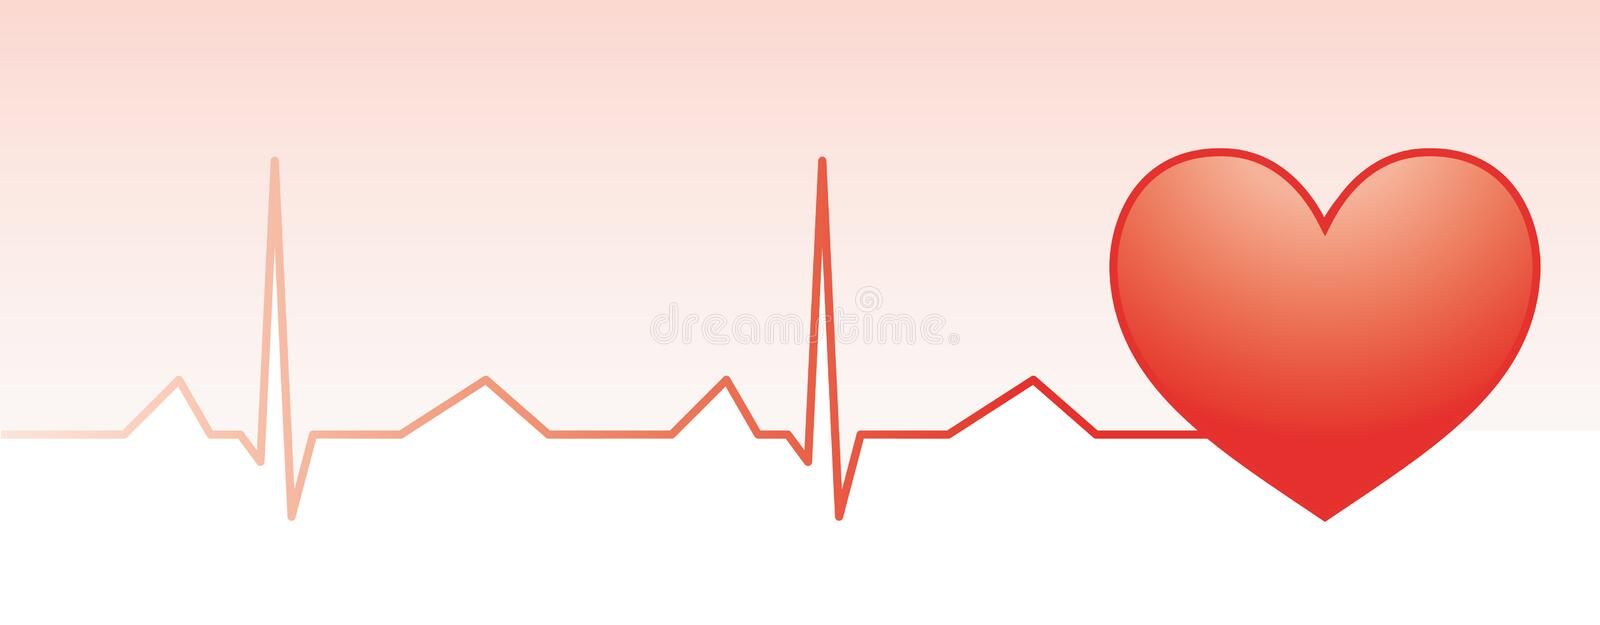 Red heart pulse monitor. With heart shape vector illustration